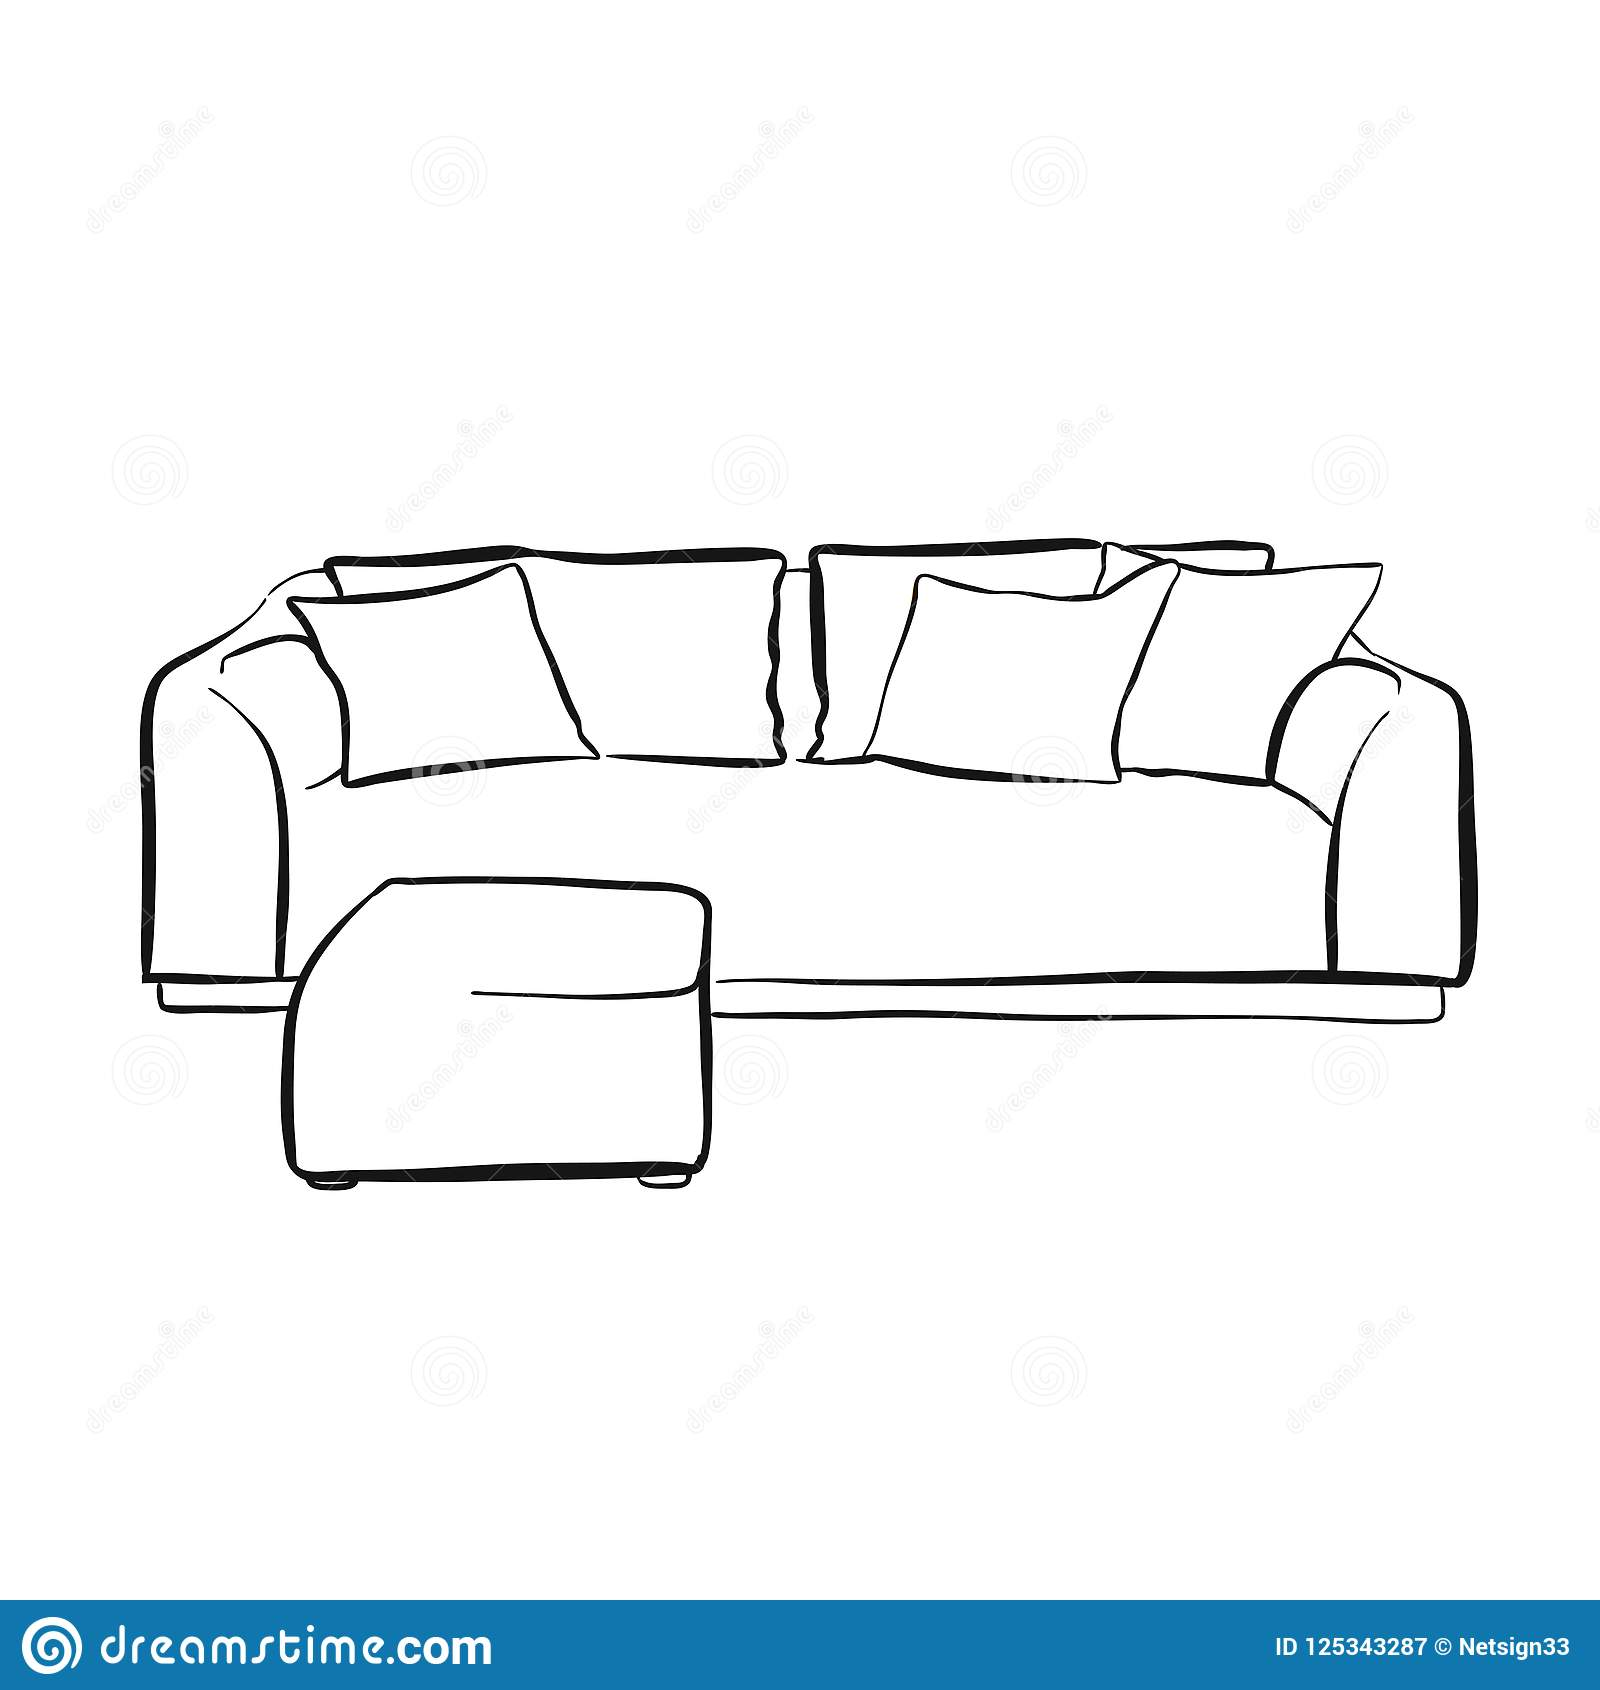 Simple Couch Outline Drawing Stock Vector Illustration Of